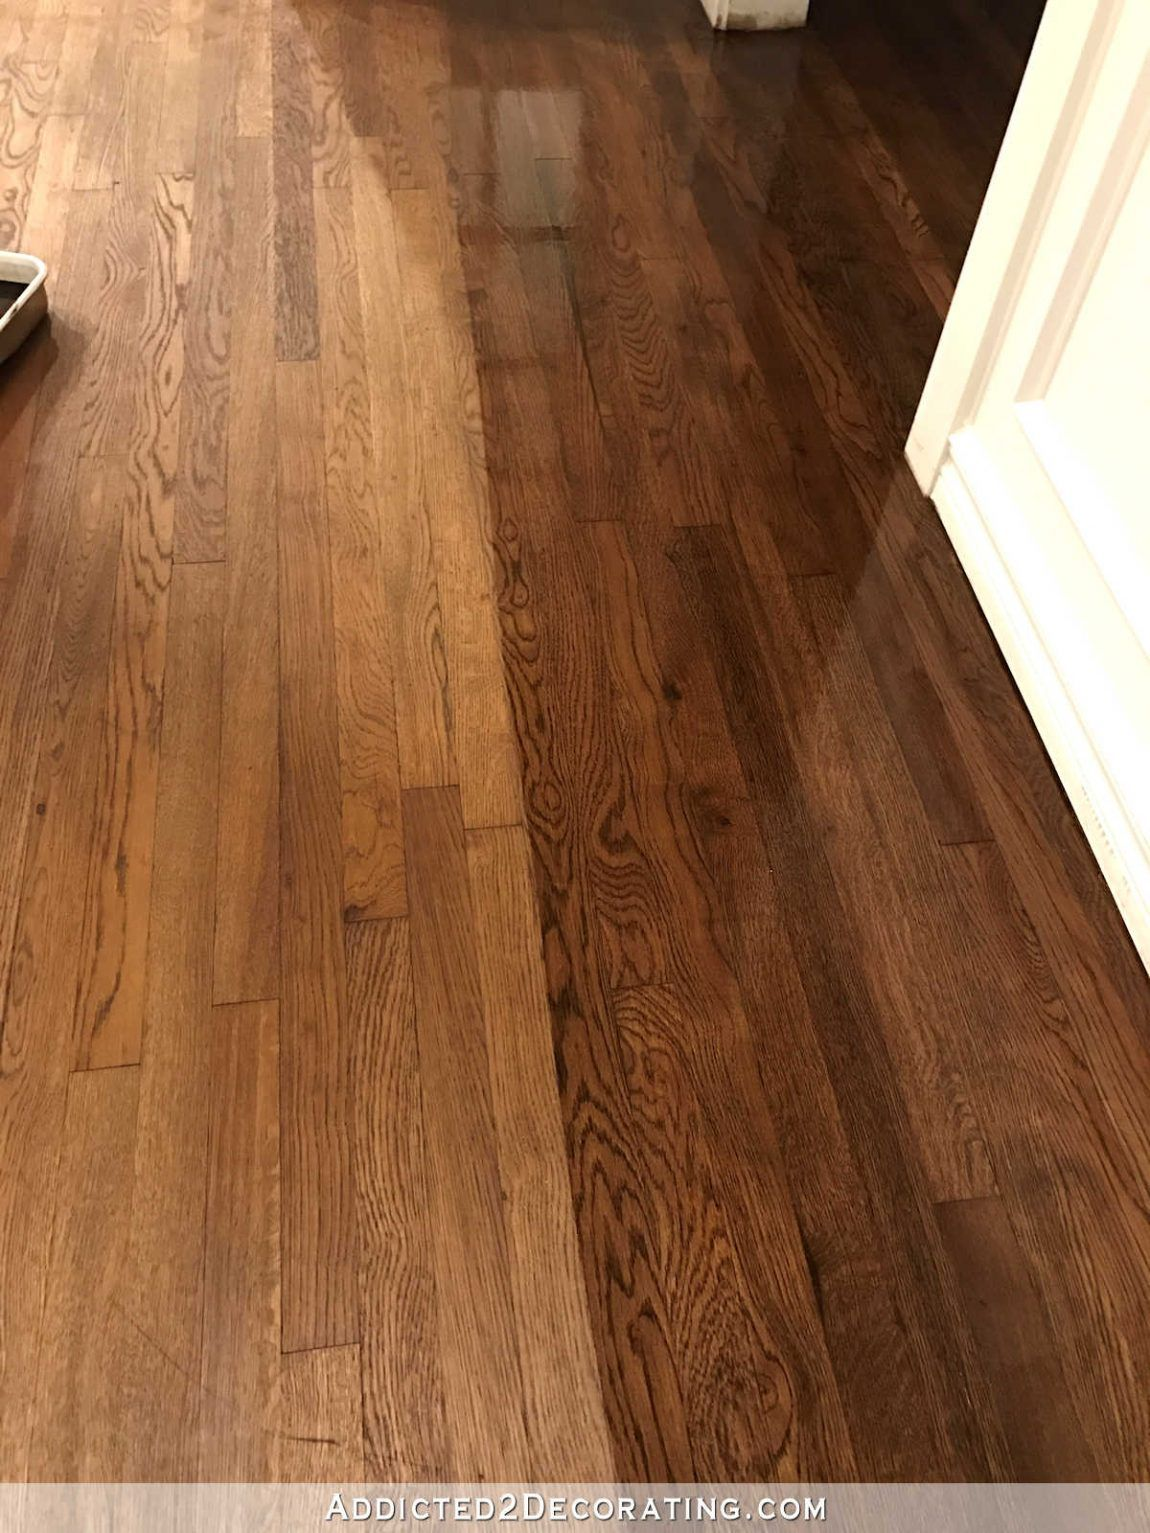 The Hardwood Floor Refinishing Adventure Continues Tip For Getting A Gorgeous Finish Addicted 2 Decorating Oak Hardwood Flooring Red Oak Hardwood Floors Hardwood Floors Dark